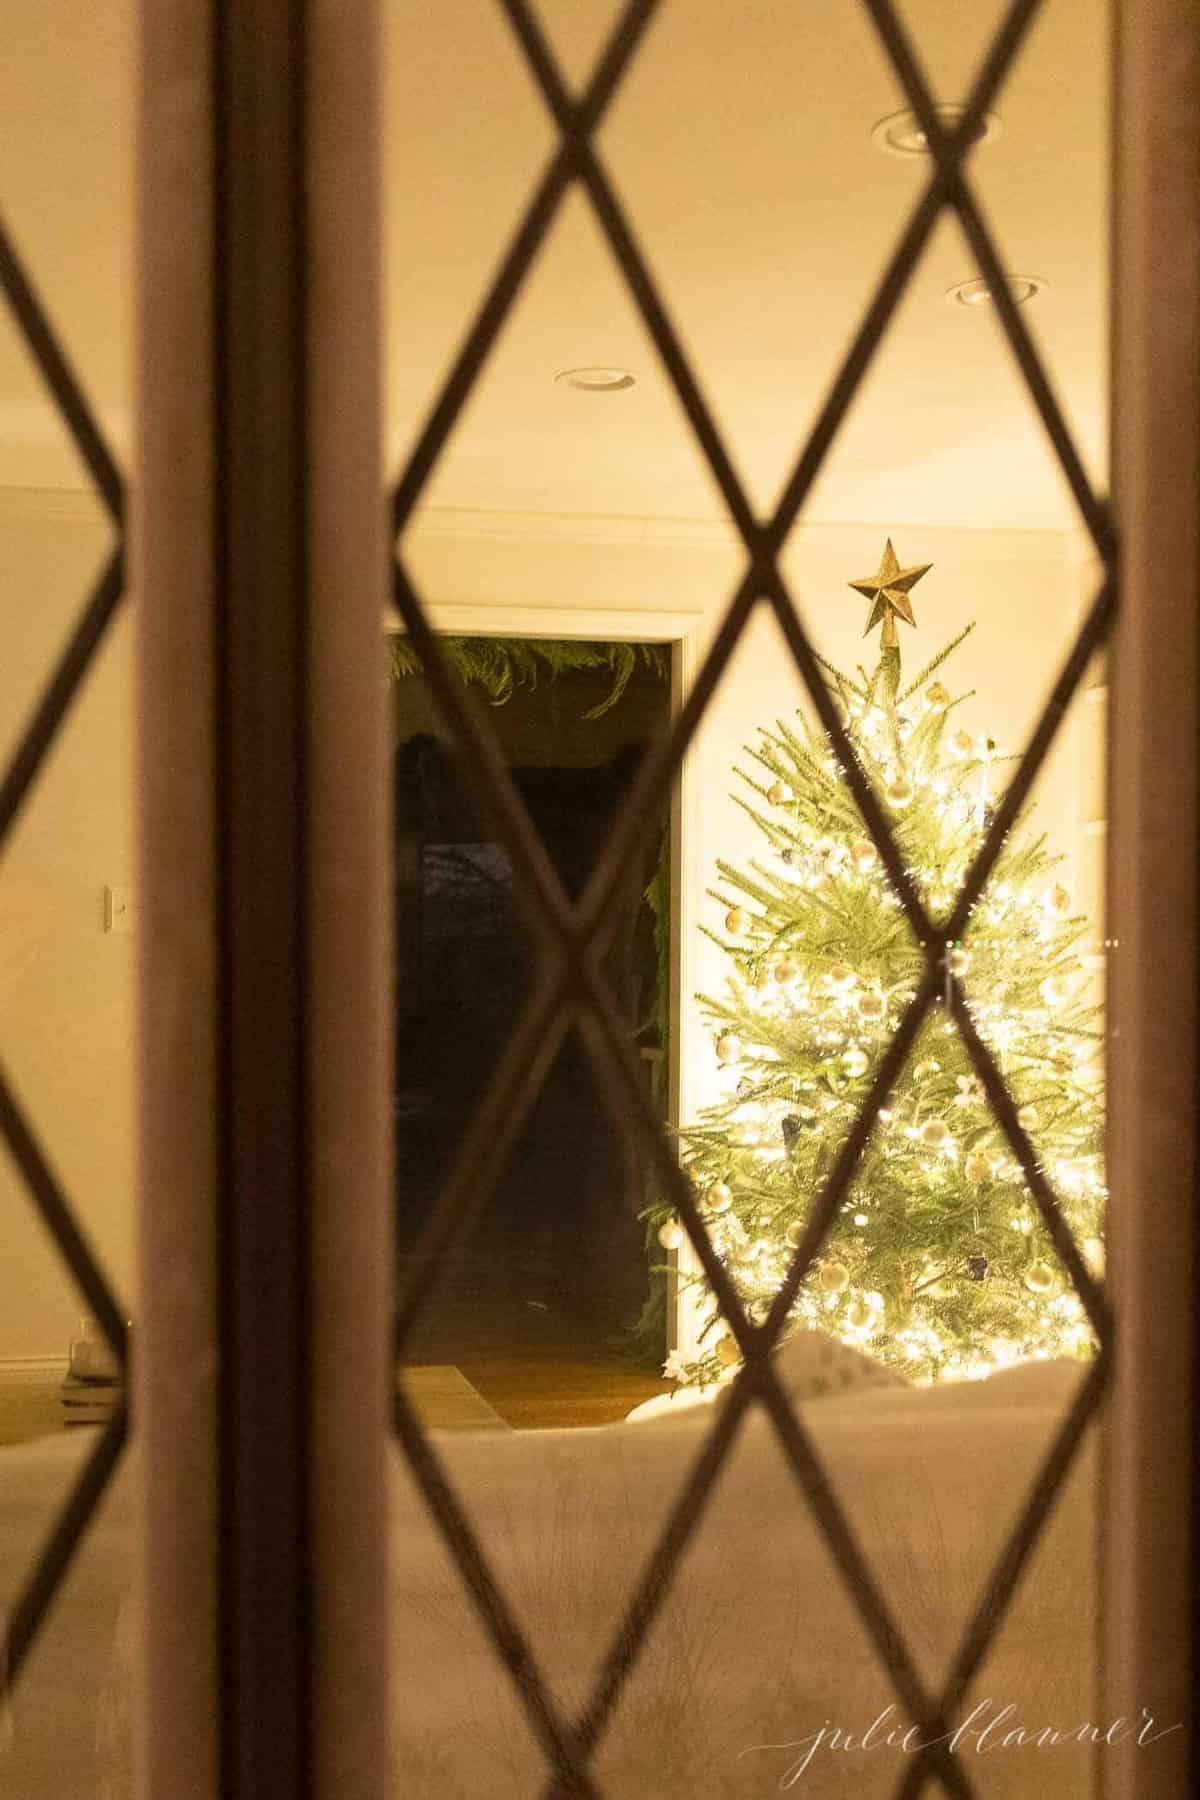 Looking from outside into a living room Christmas tree scene, at night.